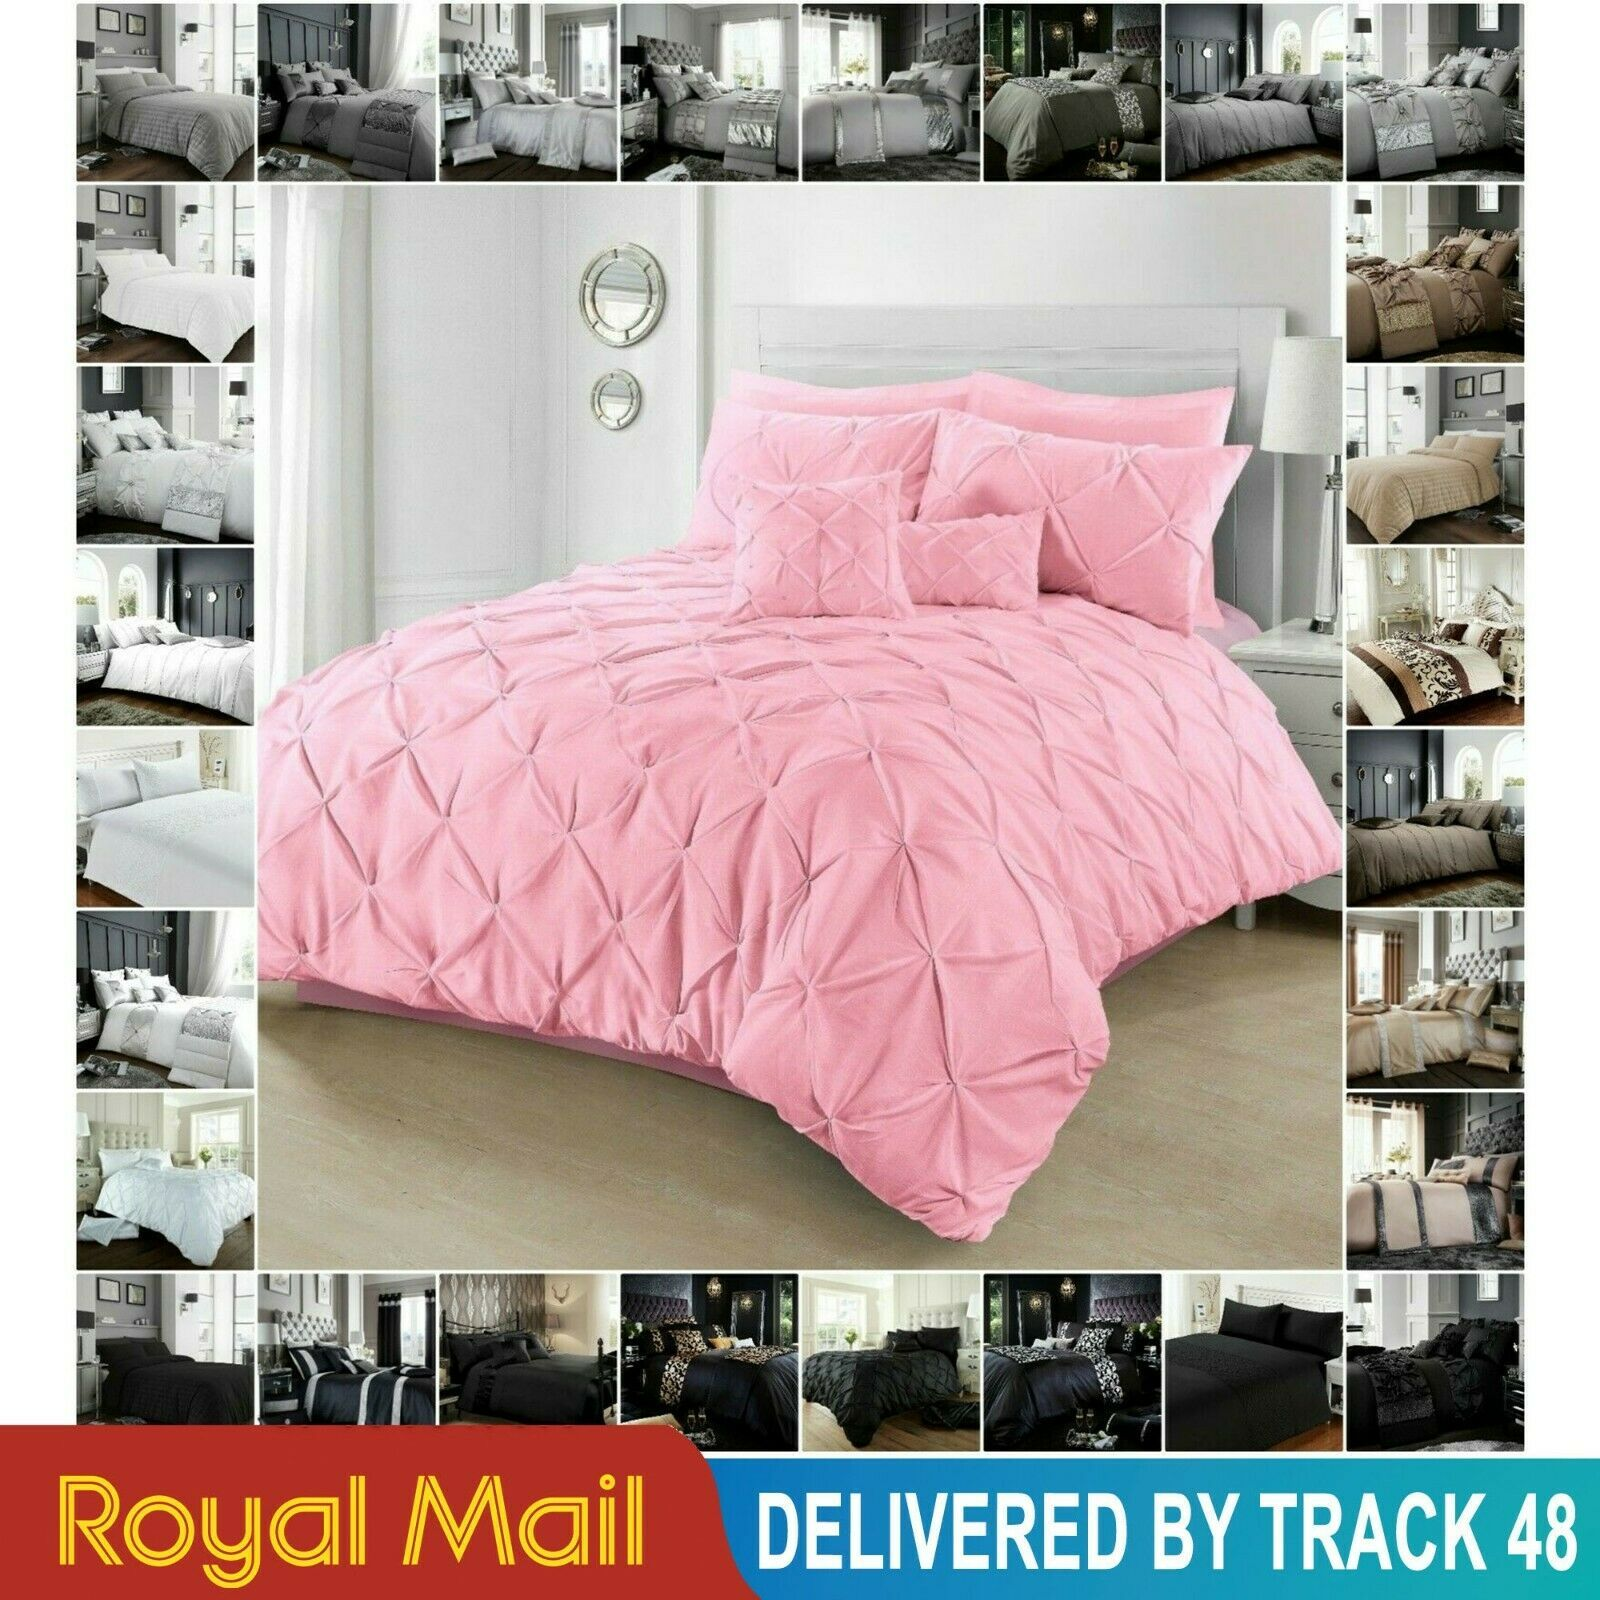 Https Ift Tt 2kysvbn Duvet Covers Ideas Of Duvet Covers Duvetcovers Double King Duvet Qu Best Duvet Covers Duvet Covers Target Pretty Duvet Covers